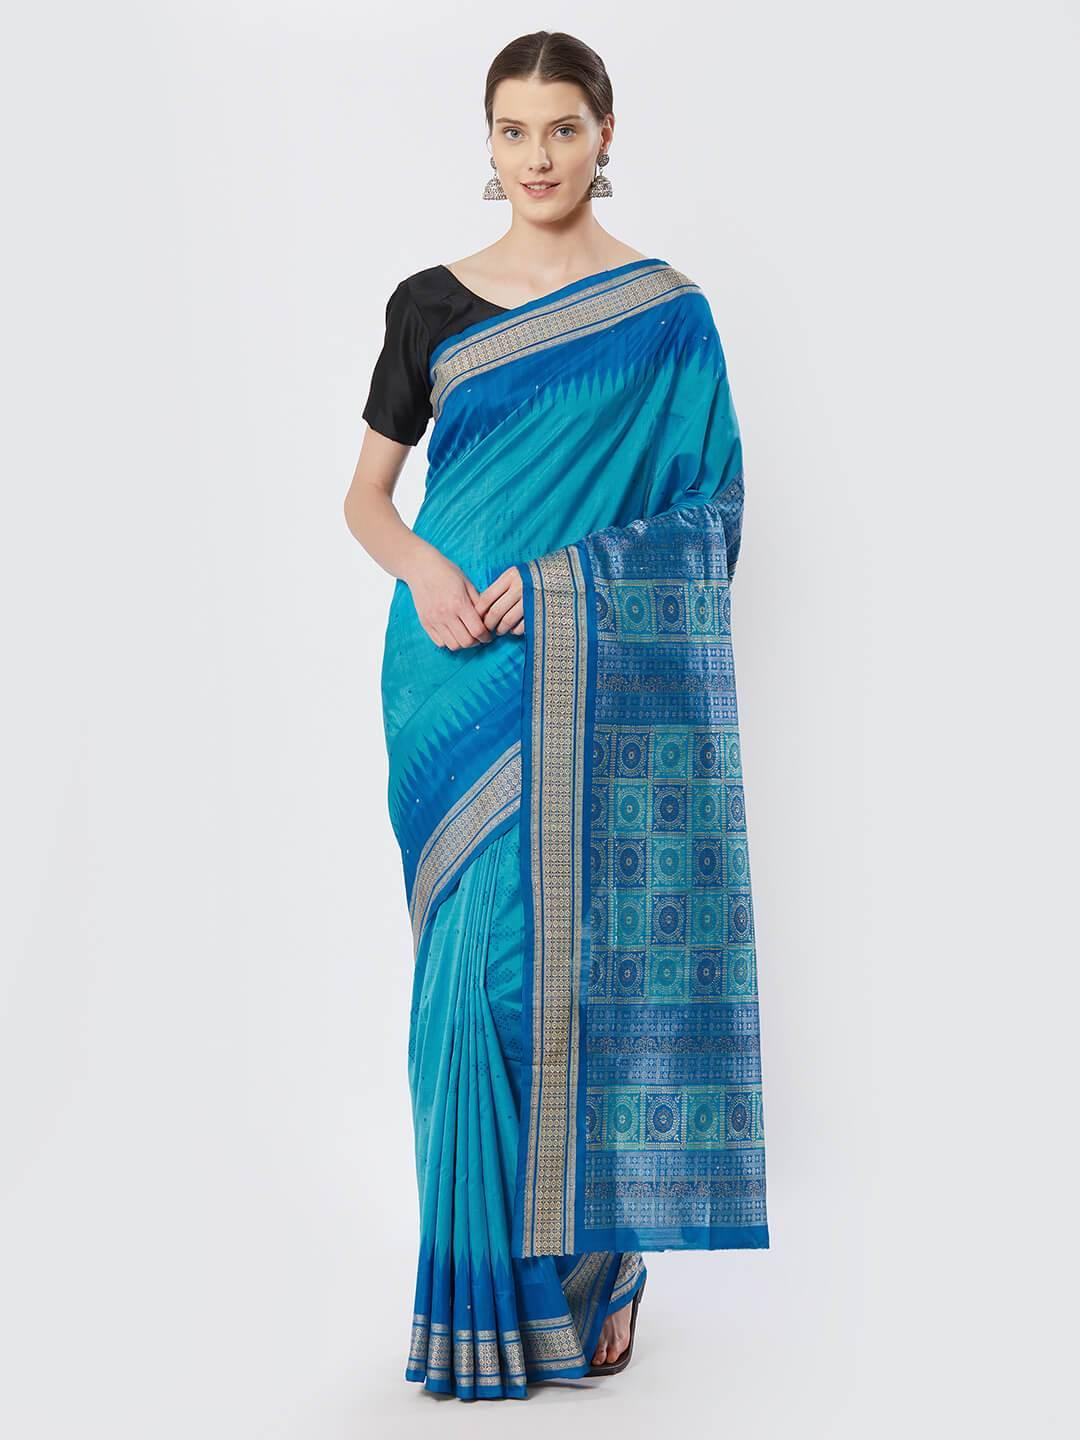 CraftsCollection.in - Cuppersulphate and Blue Bomkai Silk Saree